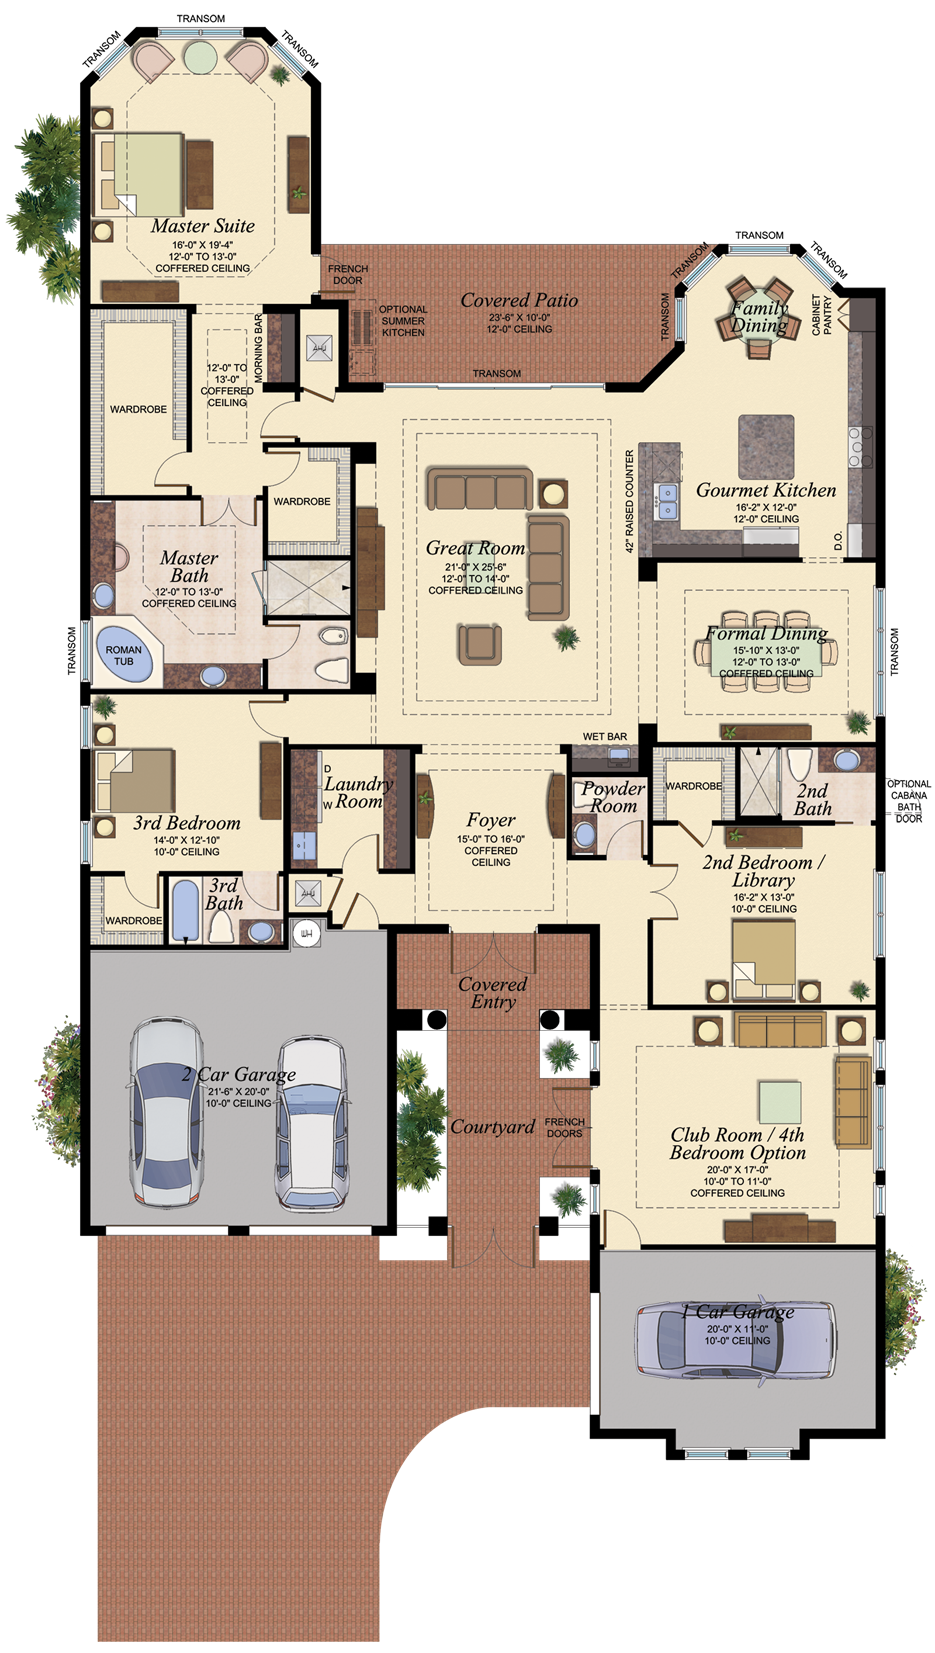 Victoria Home For Sale Plan In The Bridges Delray Beach Florida House Blueprints New House Plans Dream House Plans